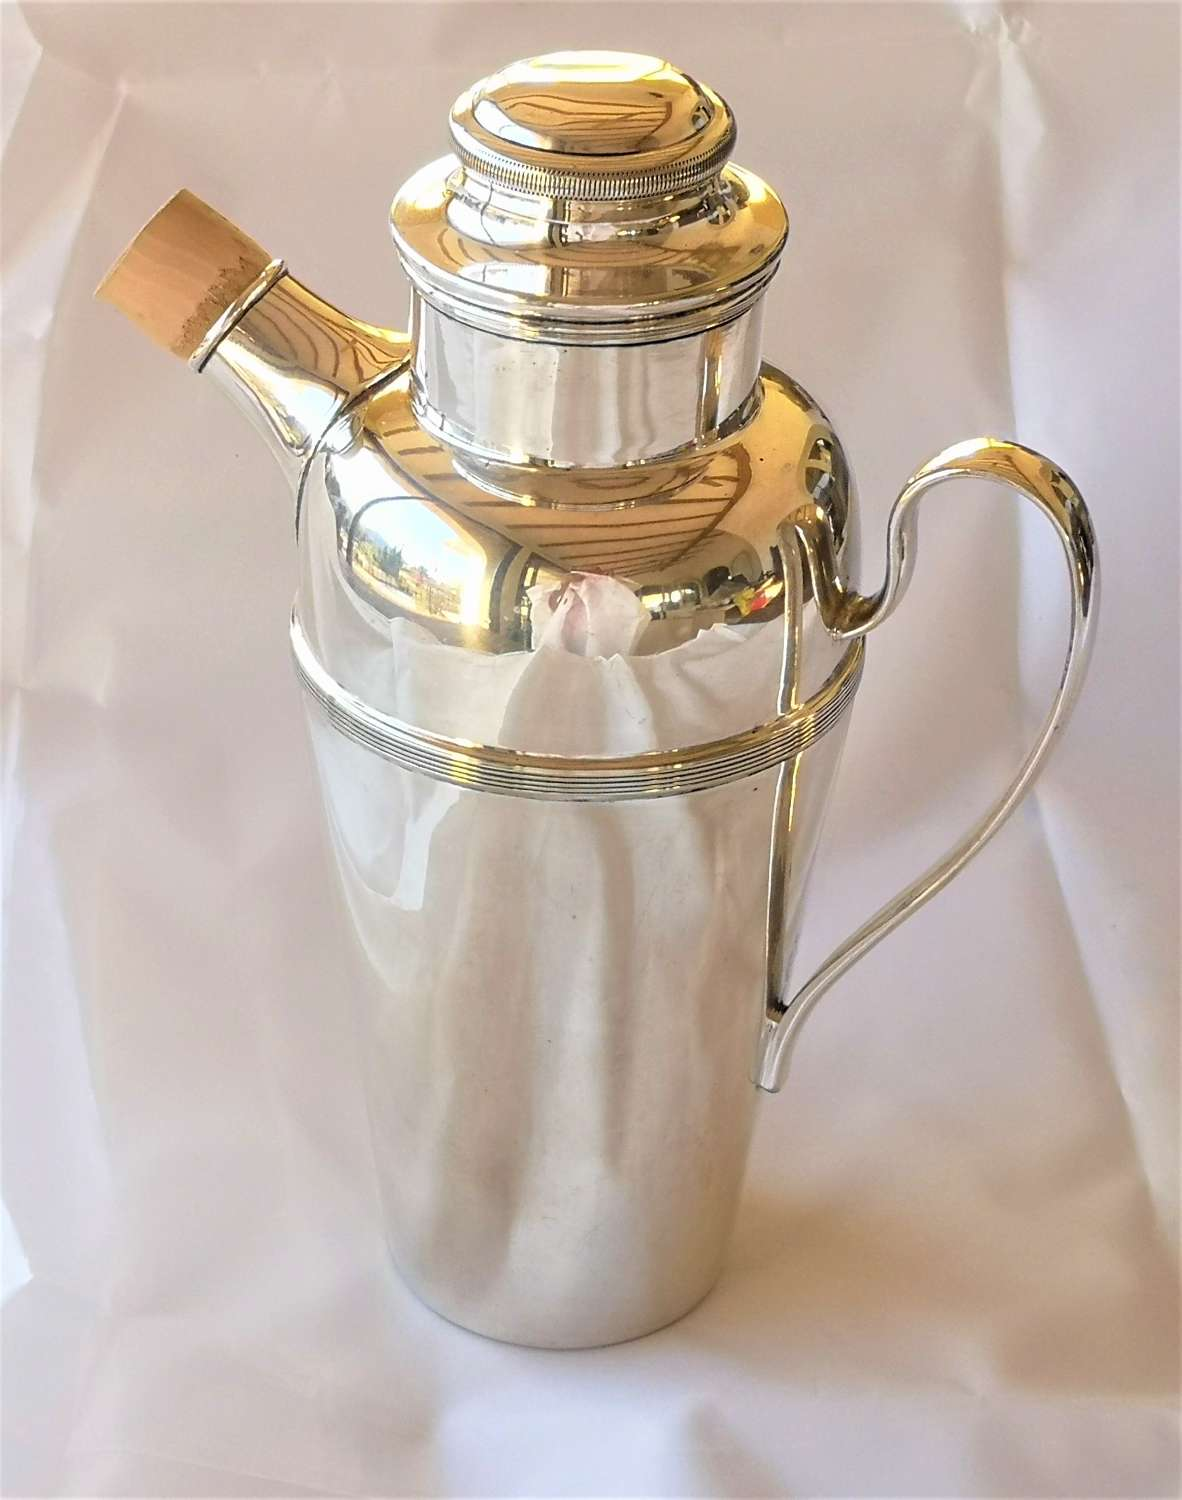 Silver plated cocktail shaker